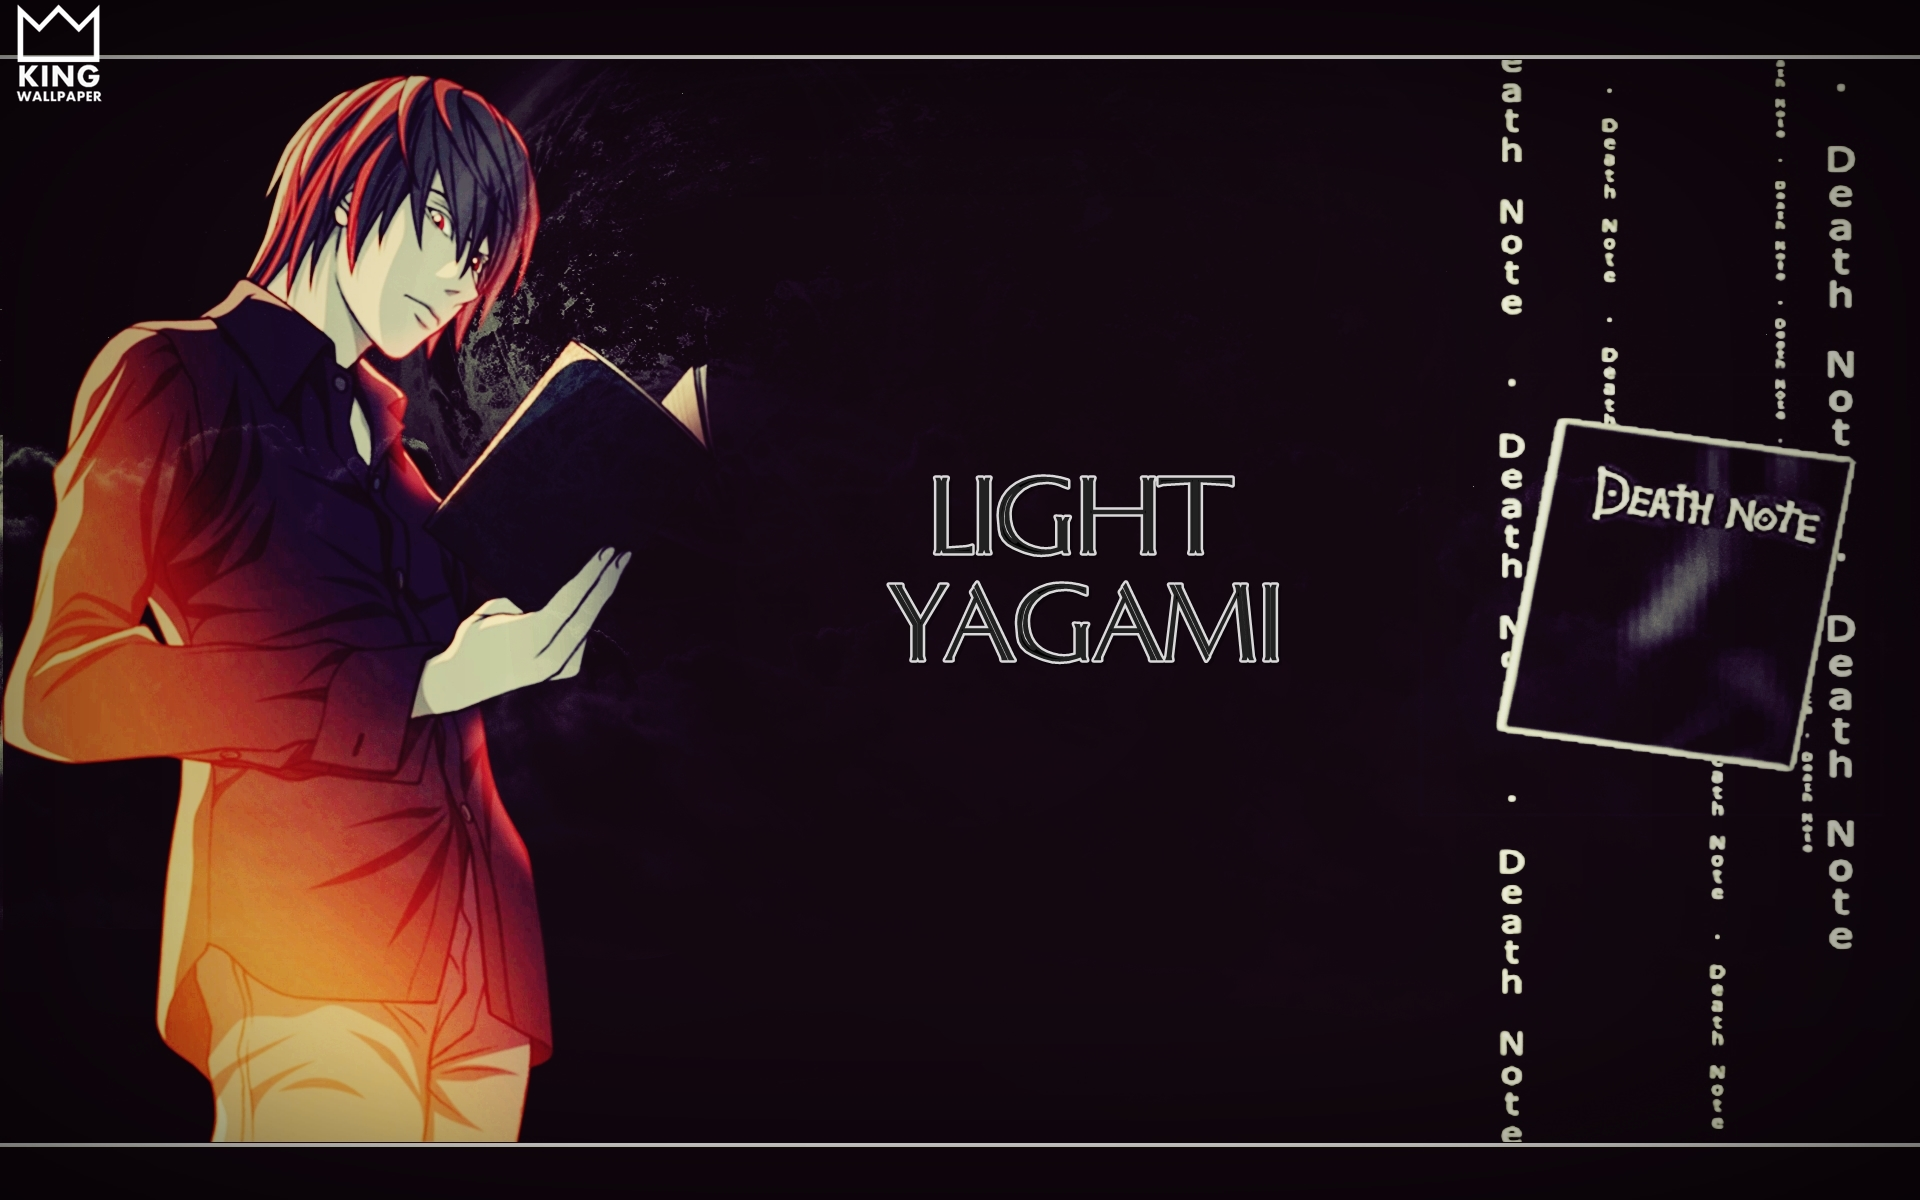 Light Yagami Wallpaper   Death Note by Kingwallpaper 1920x1200